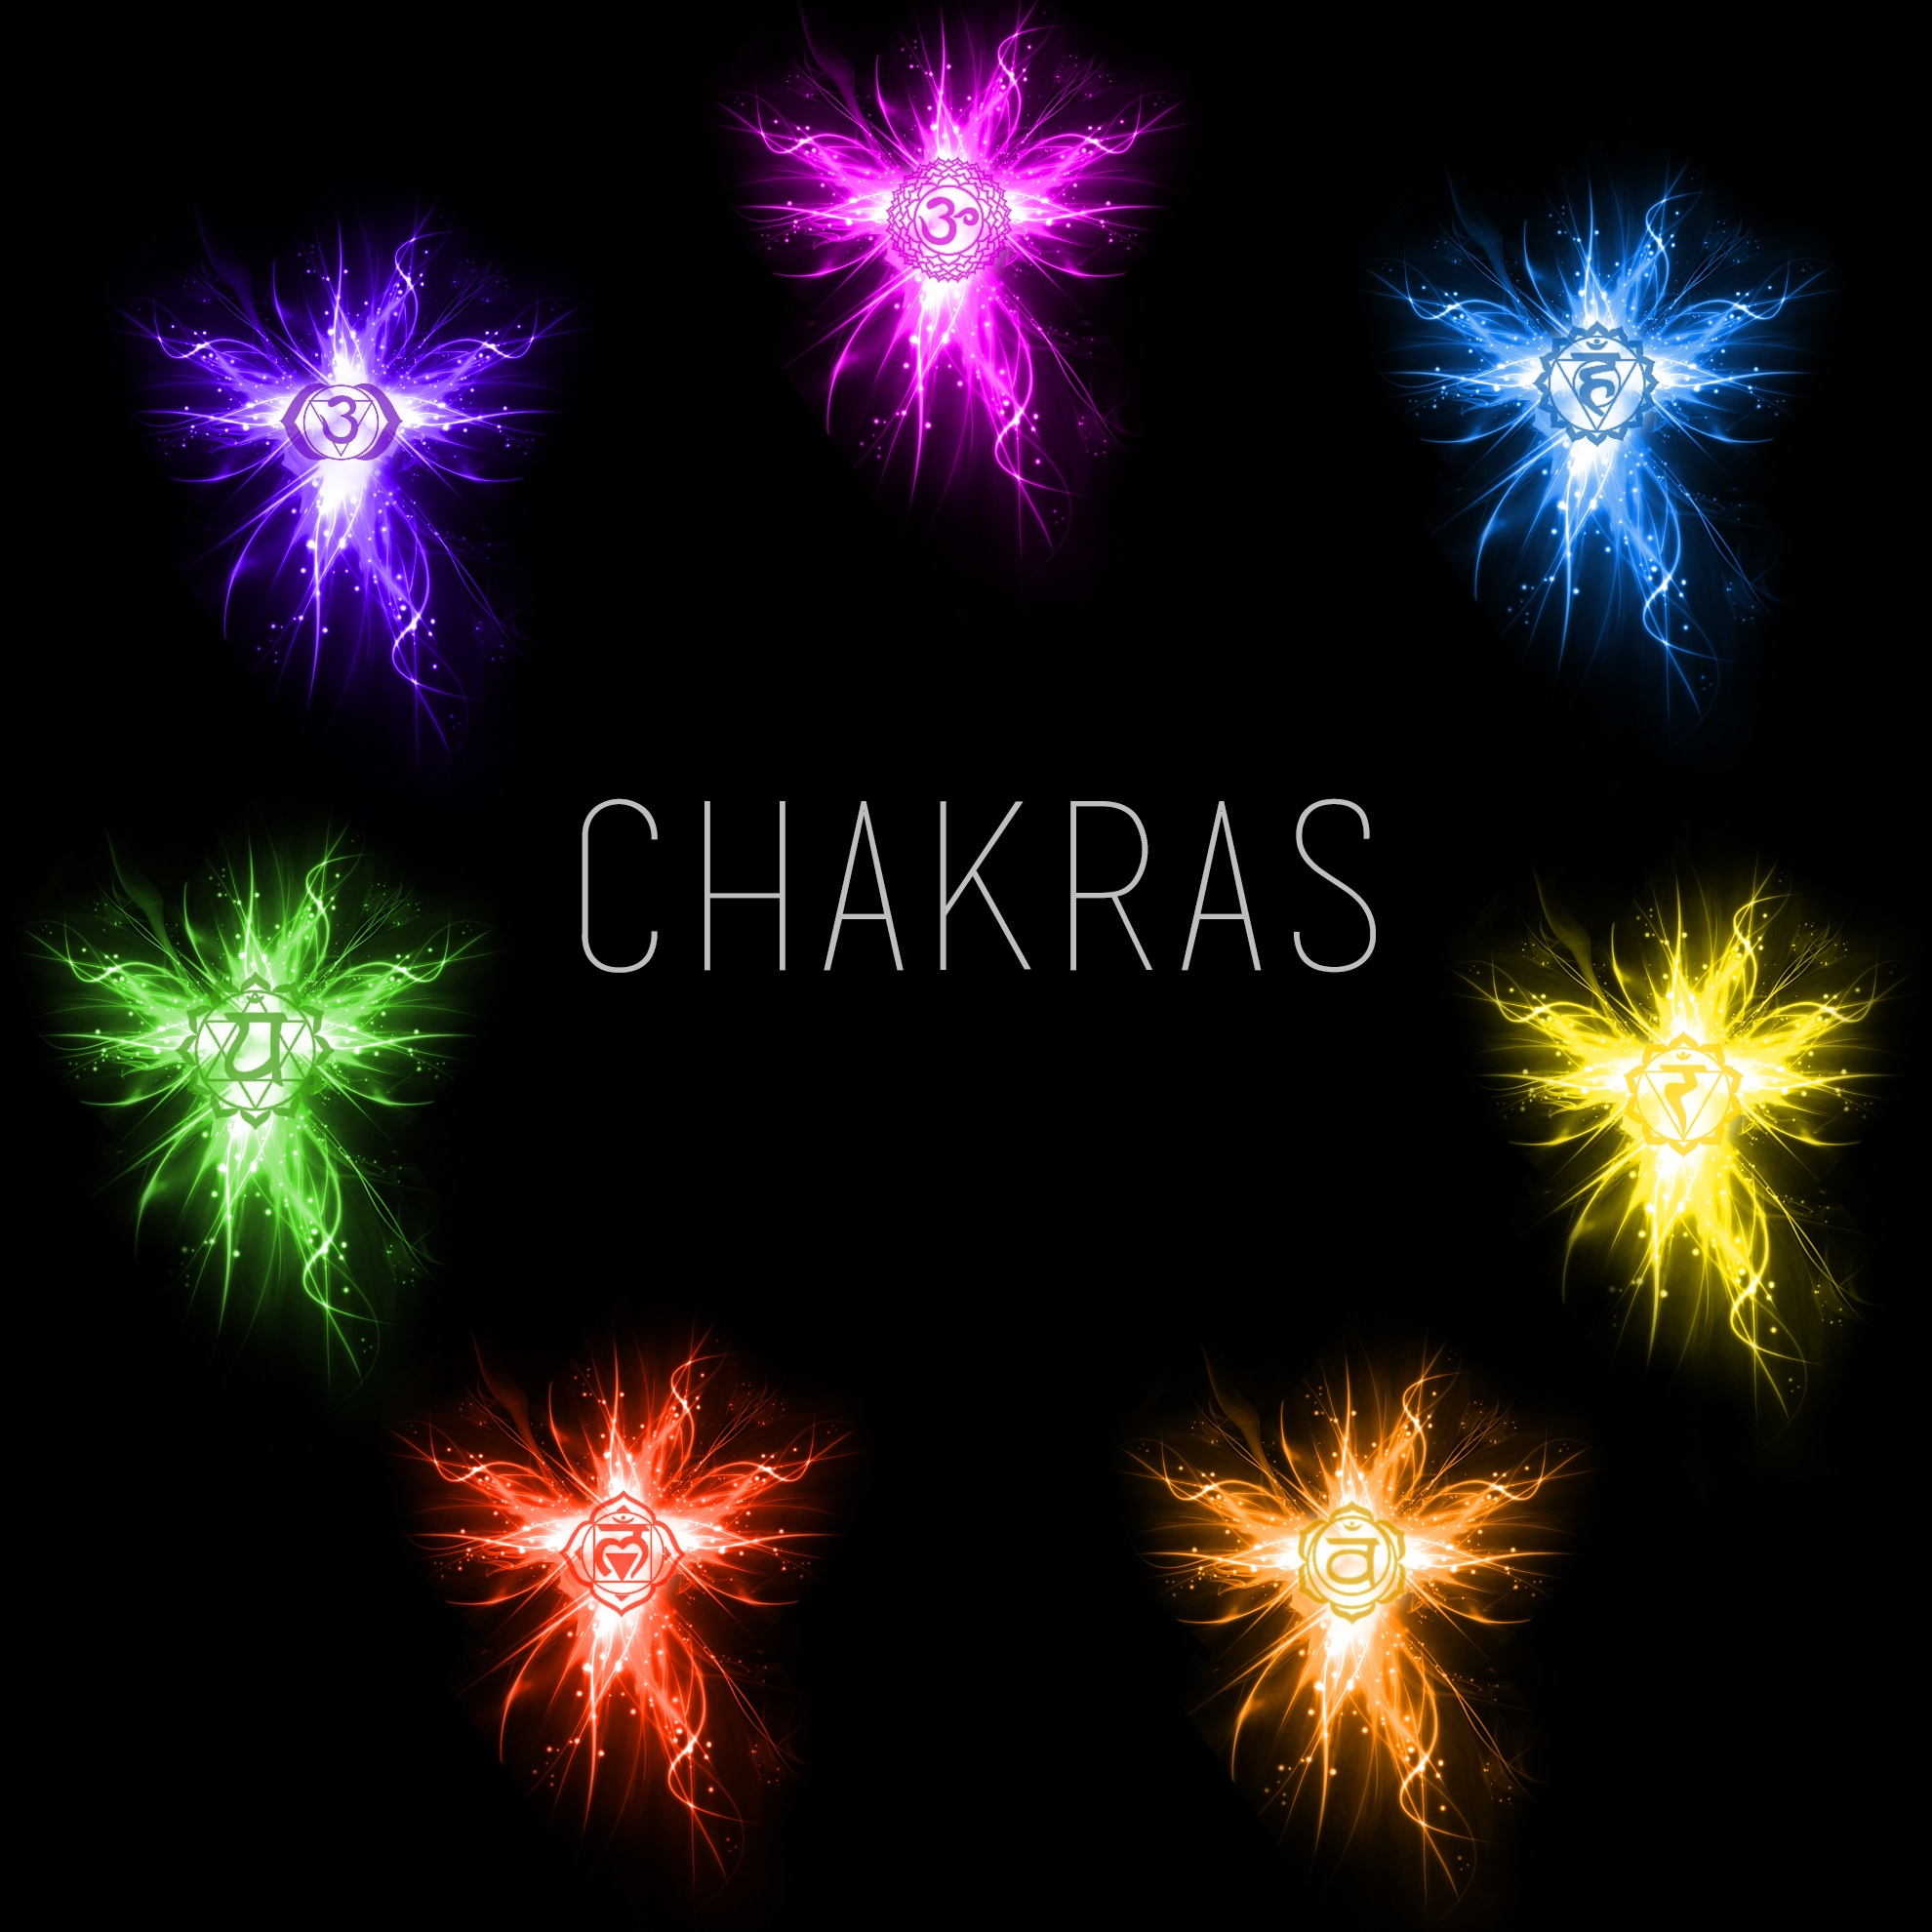 TRU CHAKRA FLO  There are 7 energy centers along our spines that connect our inner self and physical bodies, known as the Chakras. When the Chakras are aligned, it allows for energy to flow freely throughout the body for a greater physical, spiritual, emotional, and mental balance.  Suitable for all levels.